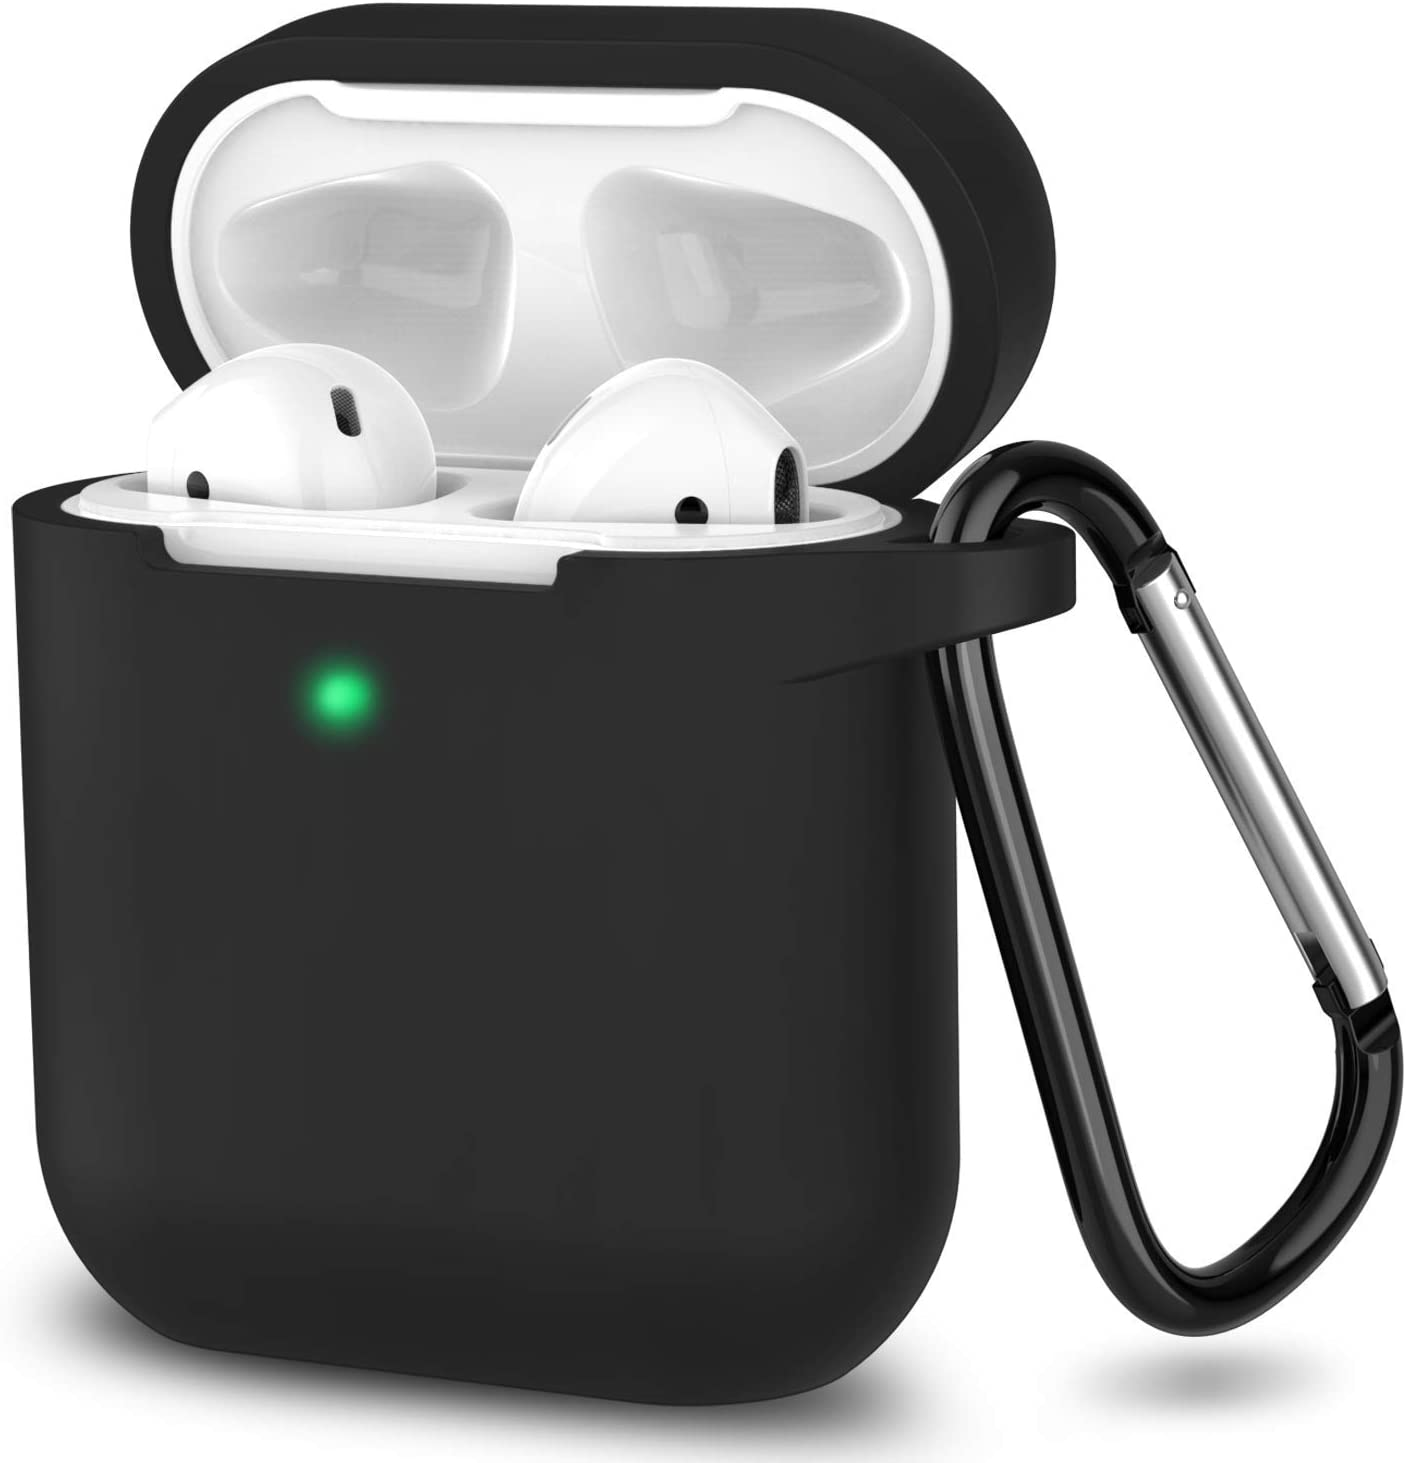 Wireless Earbuds Wireless Bluetooth Earbuds 3D Stereo Headphones 【24H Fast Charging Case】-01